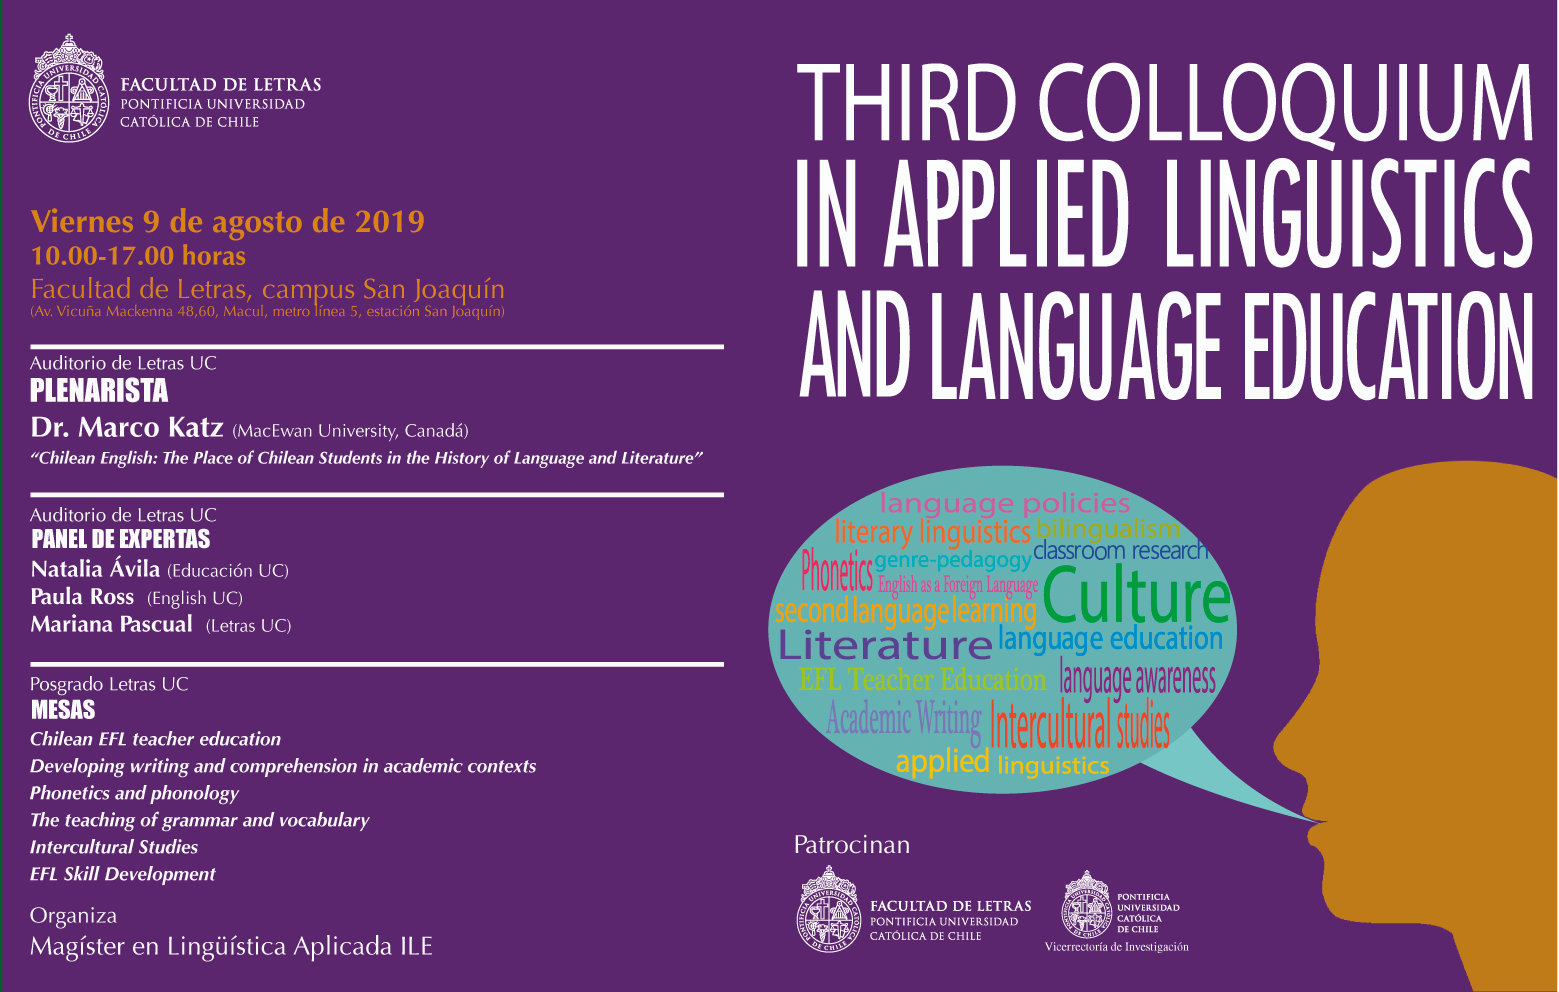 Third Colloquium in Applied Linguistics and Language Education